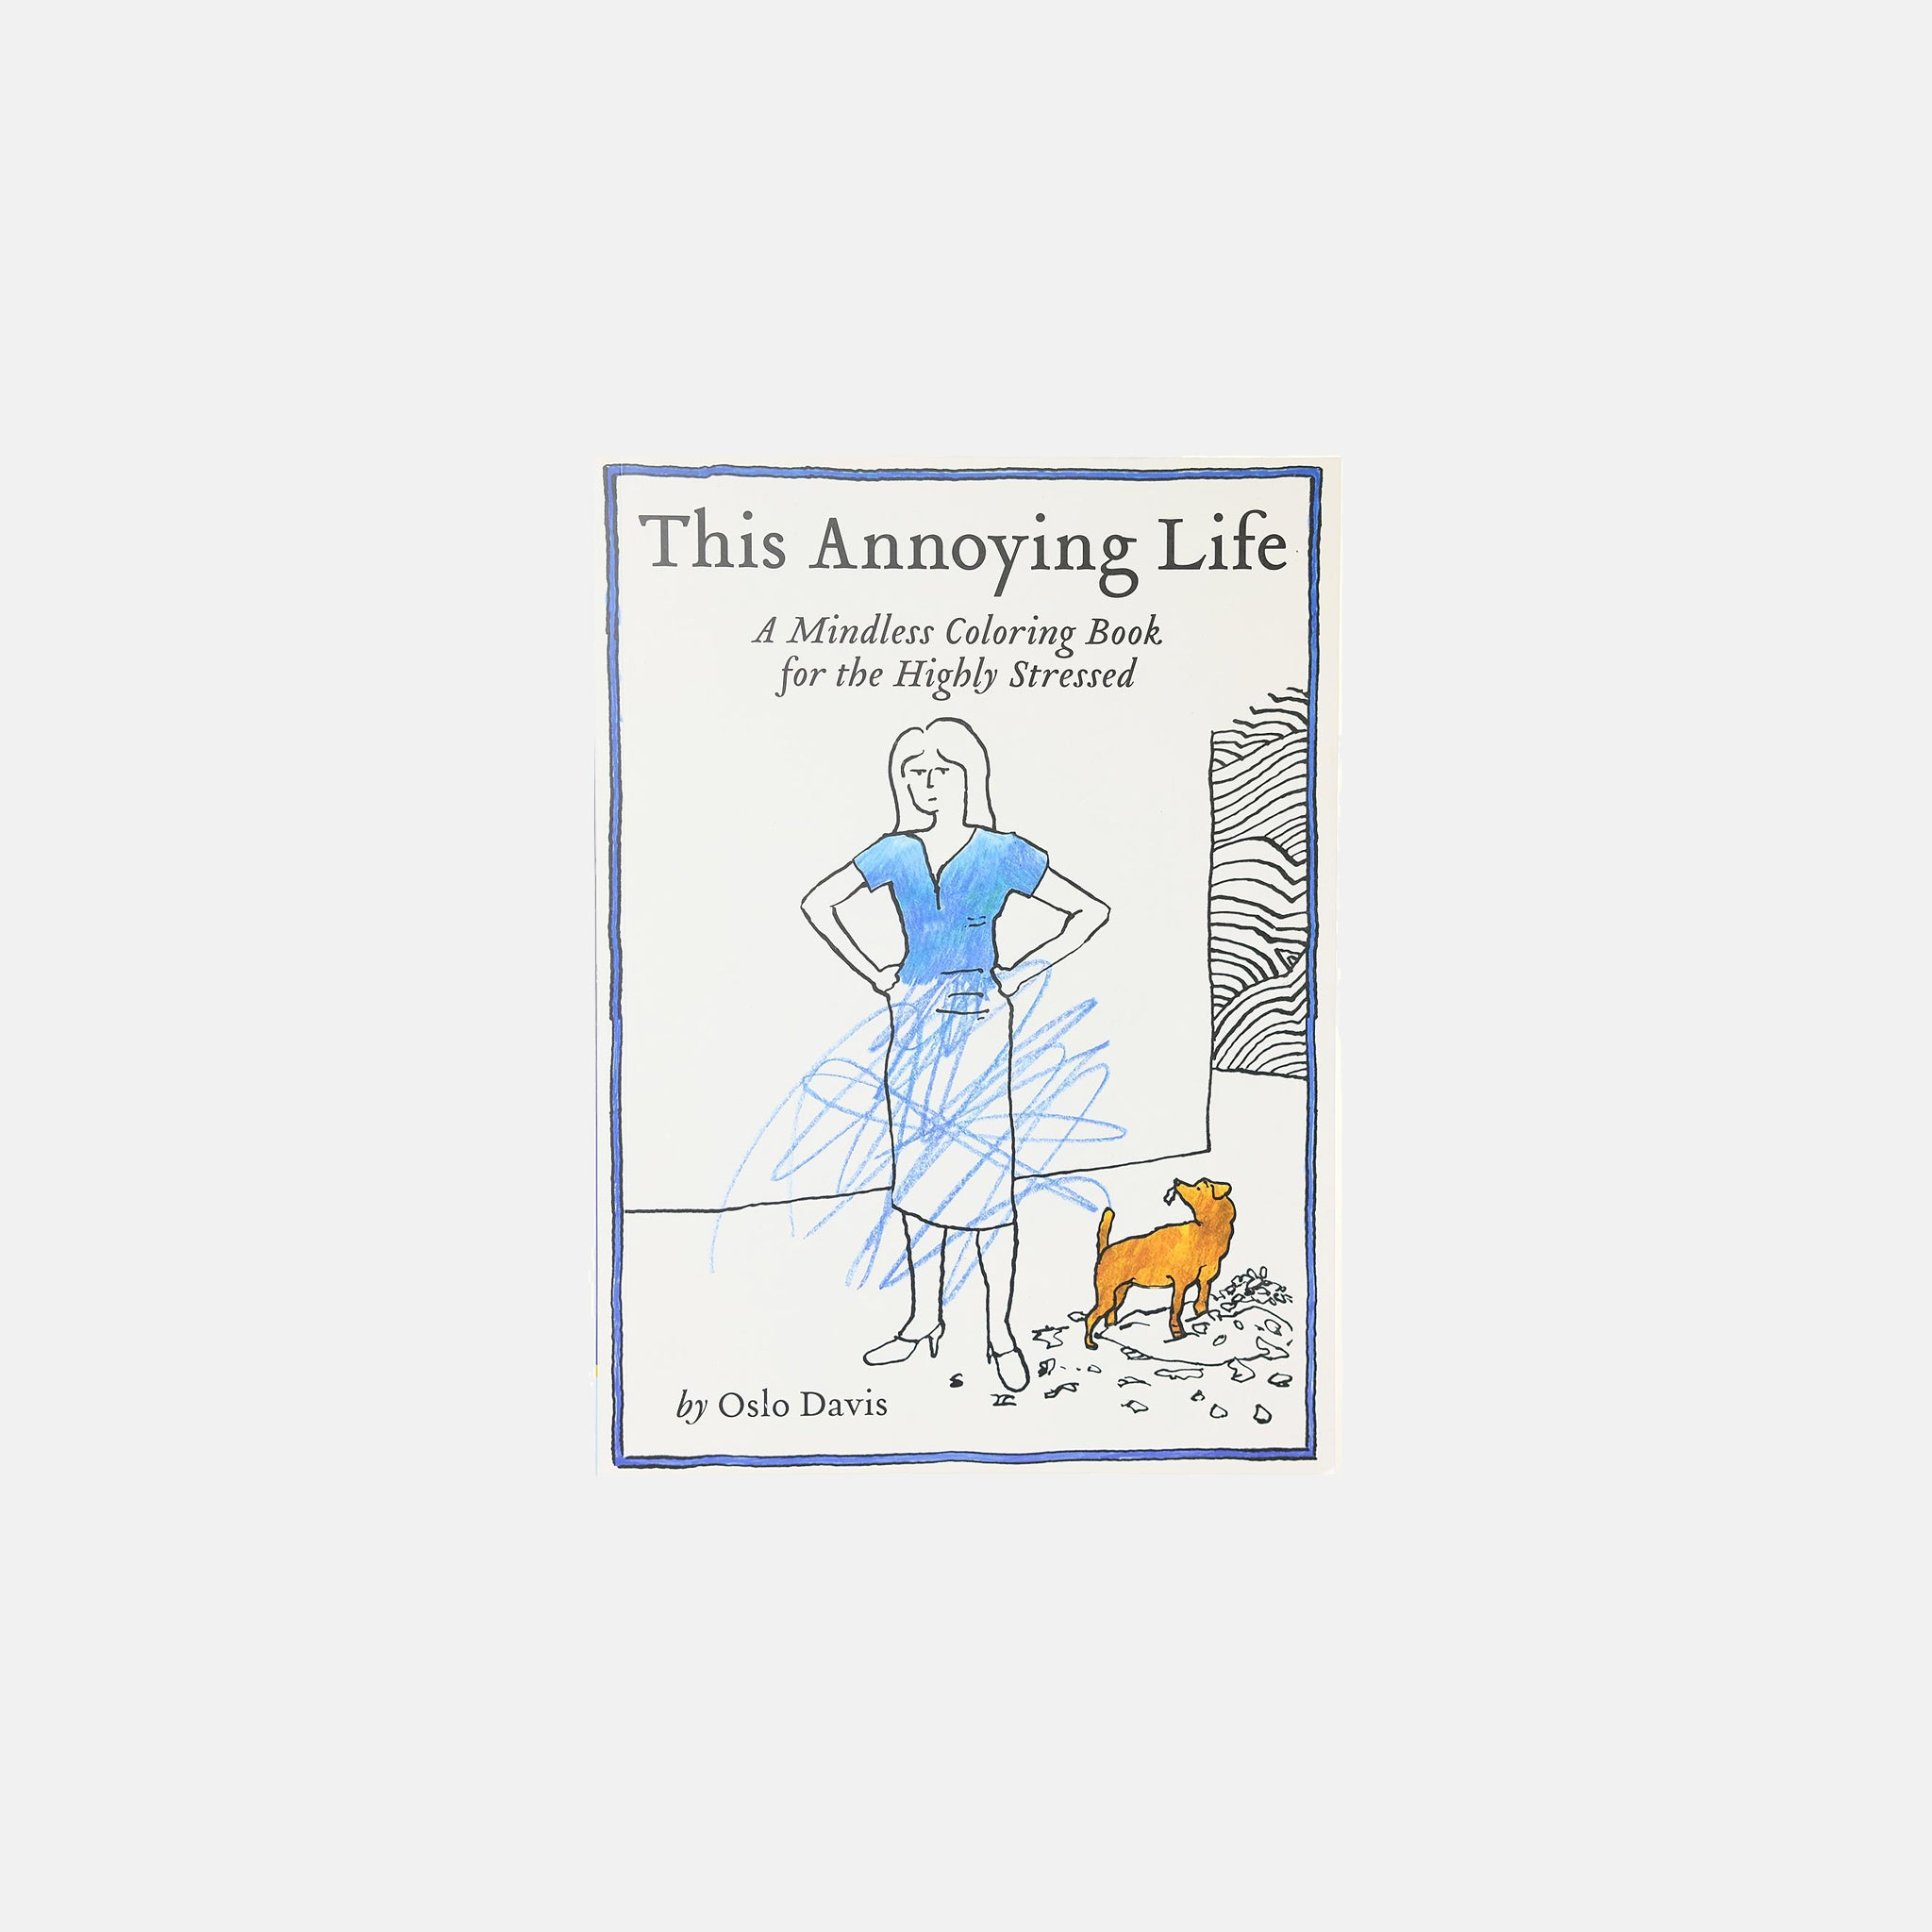 The Annoying Life Colouring Book